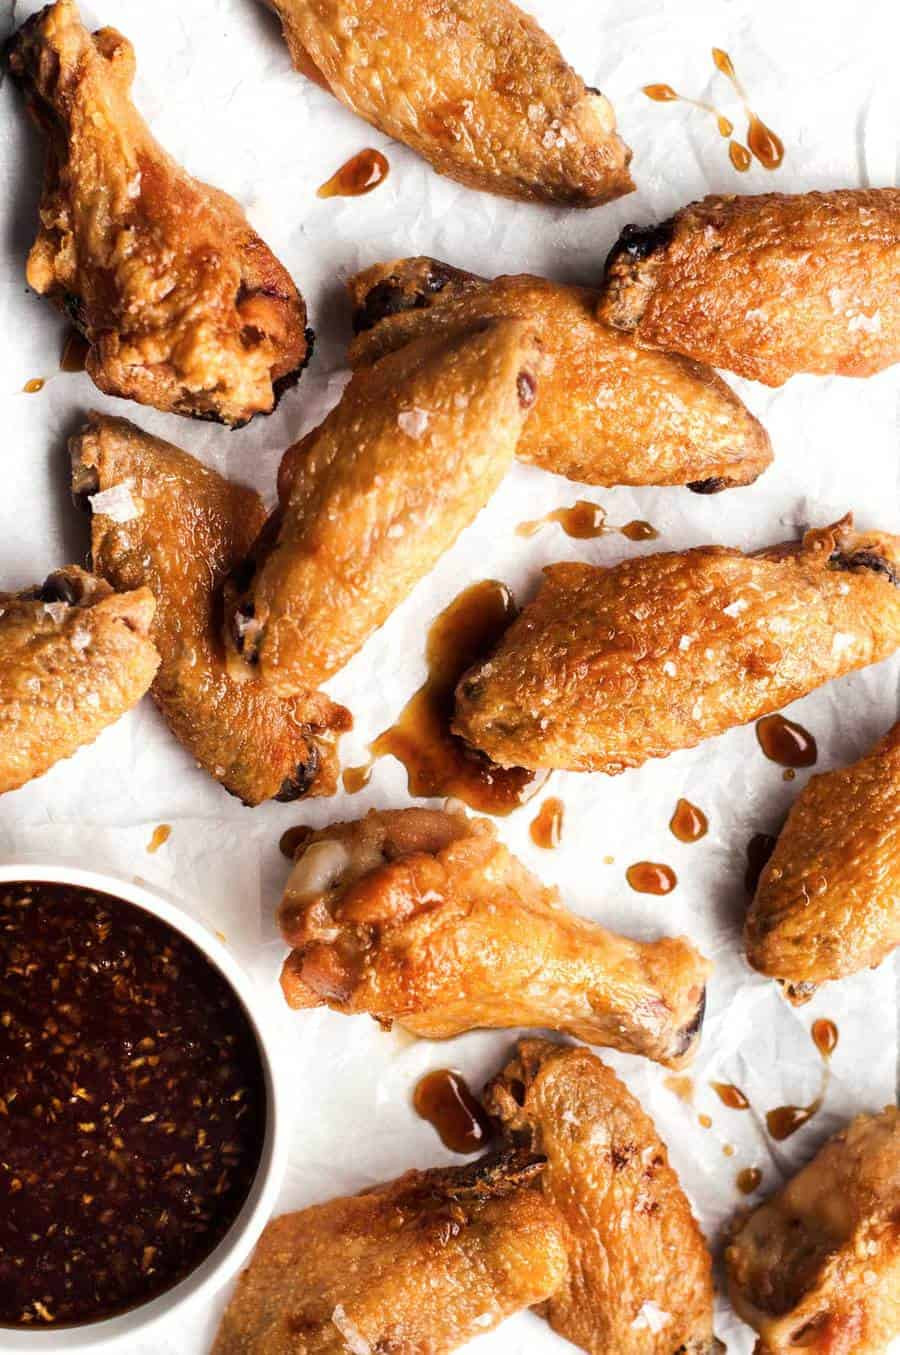 Oven Baked Chicken Wings Recipe  Truly Crispy Oven Baked Chicken Wings with Honey Garlic